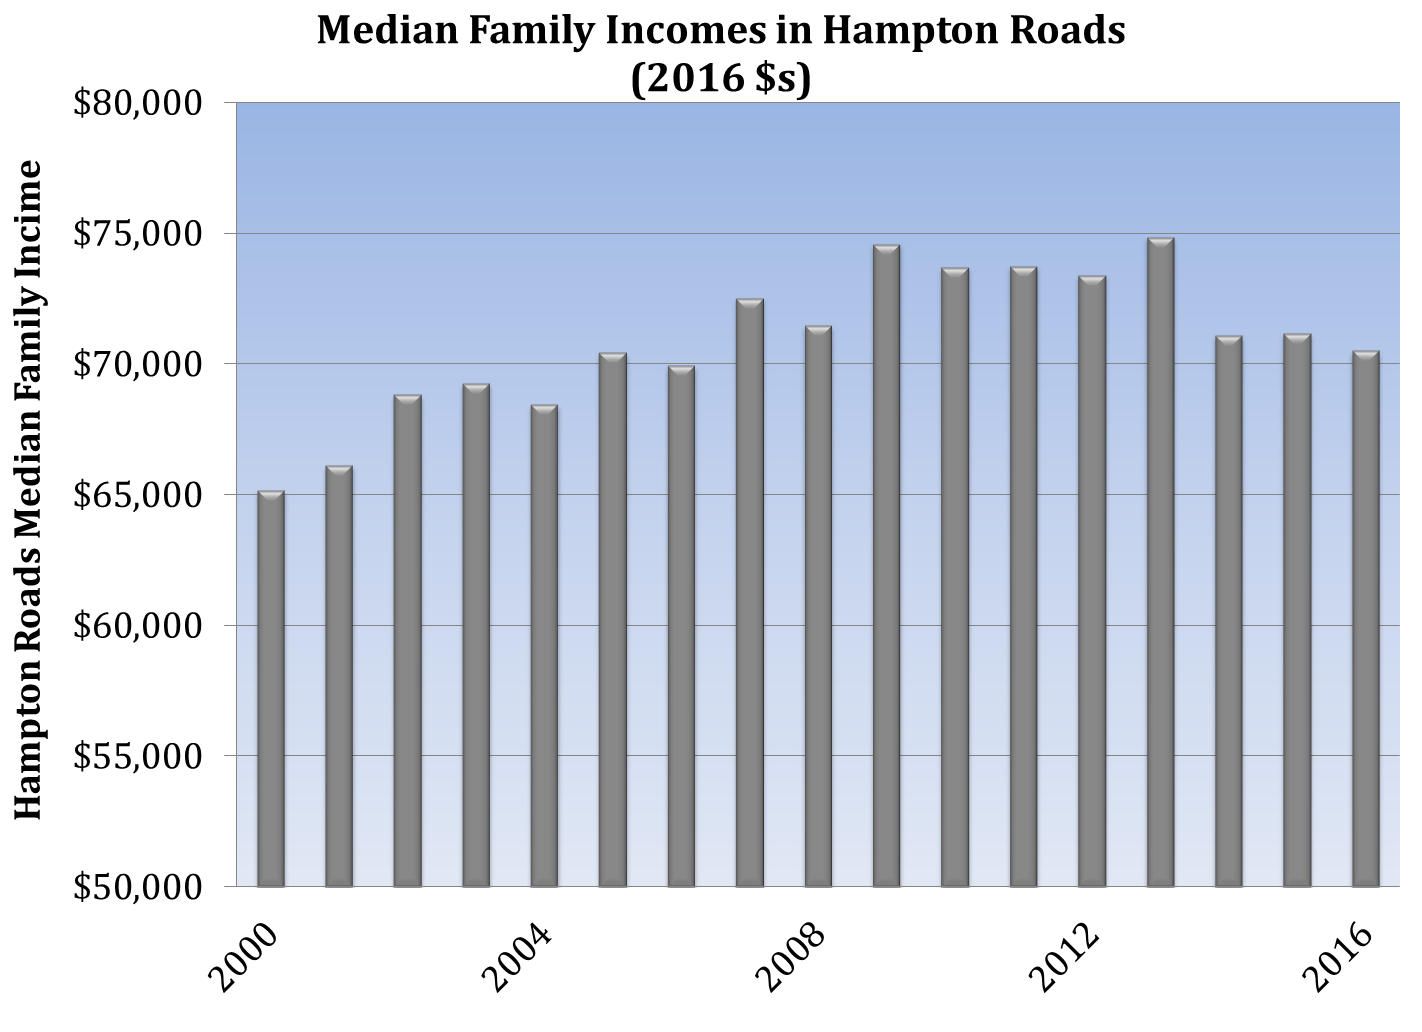 Hampton Roads Median Family Incomes